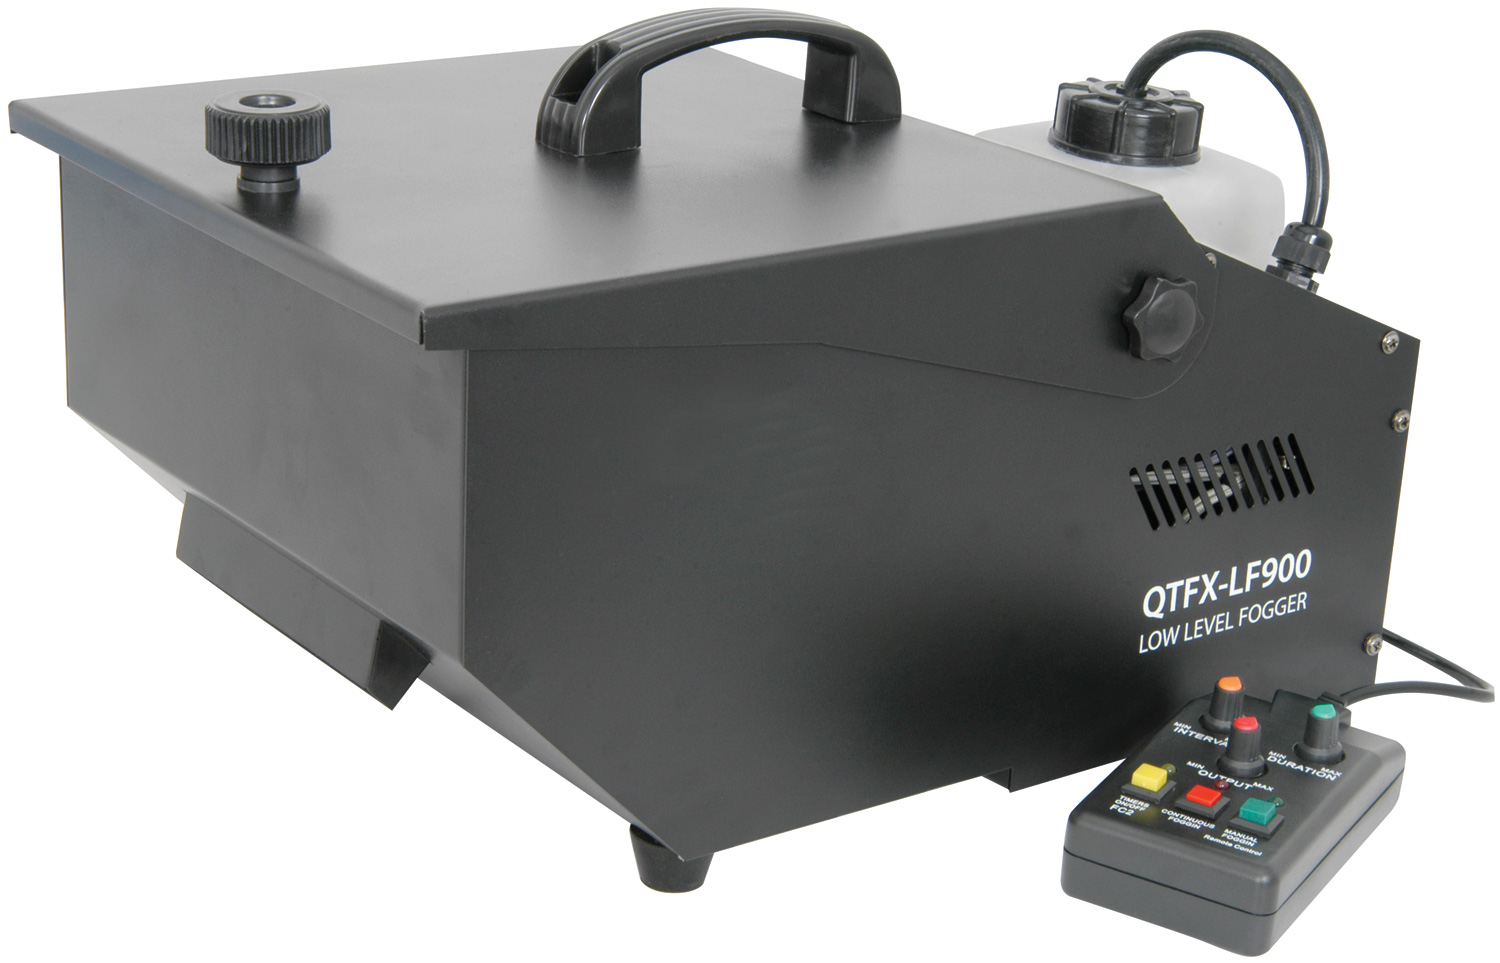 QTFX-LF900 low level fogger